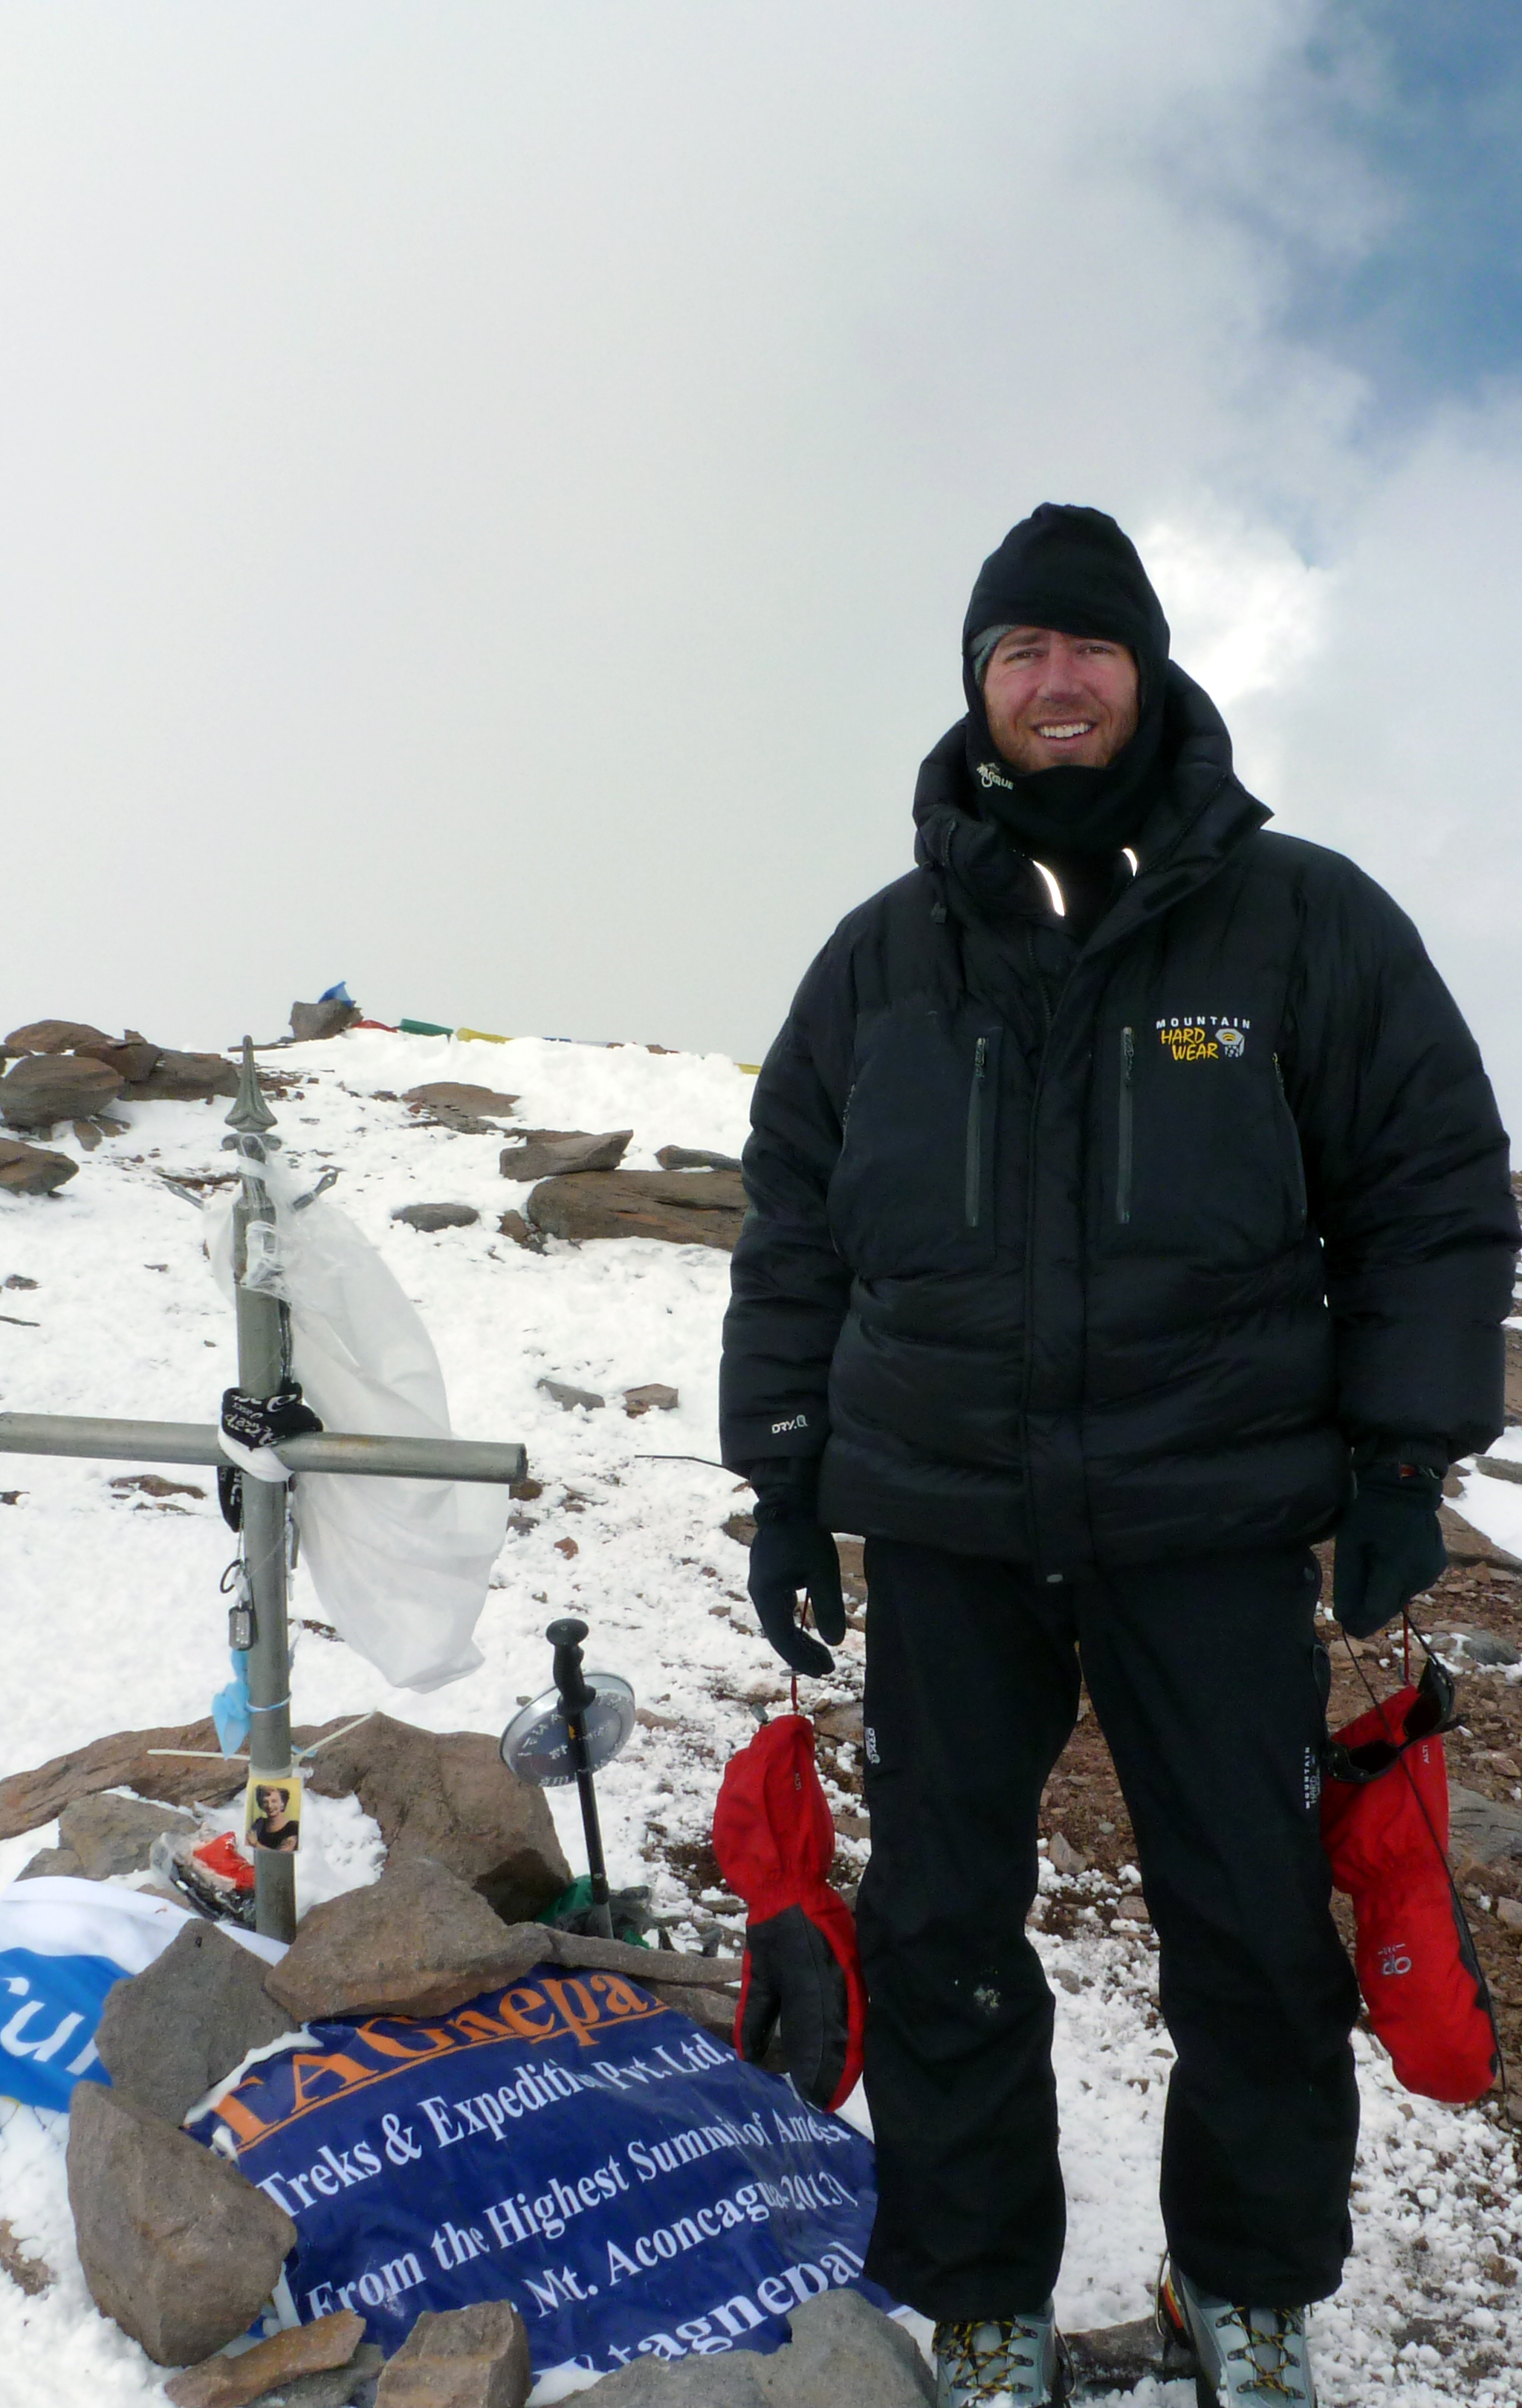 Dave Artusi - Summit of Aconcagua 2013